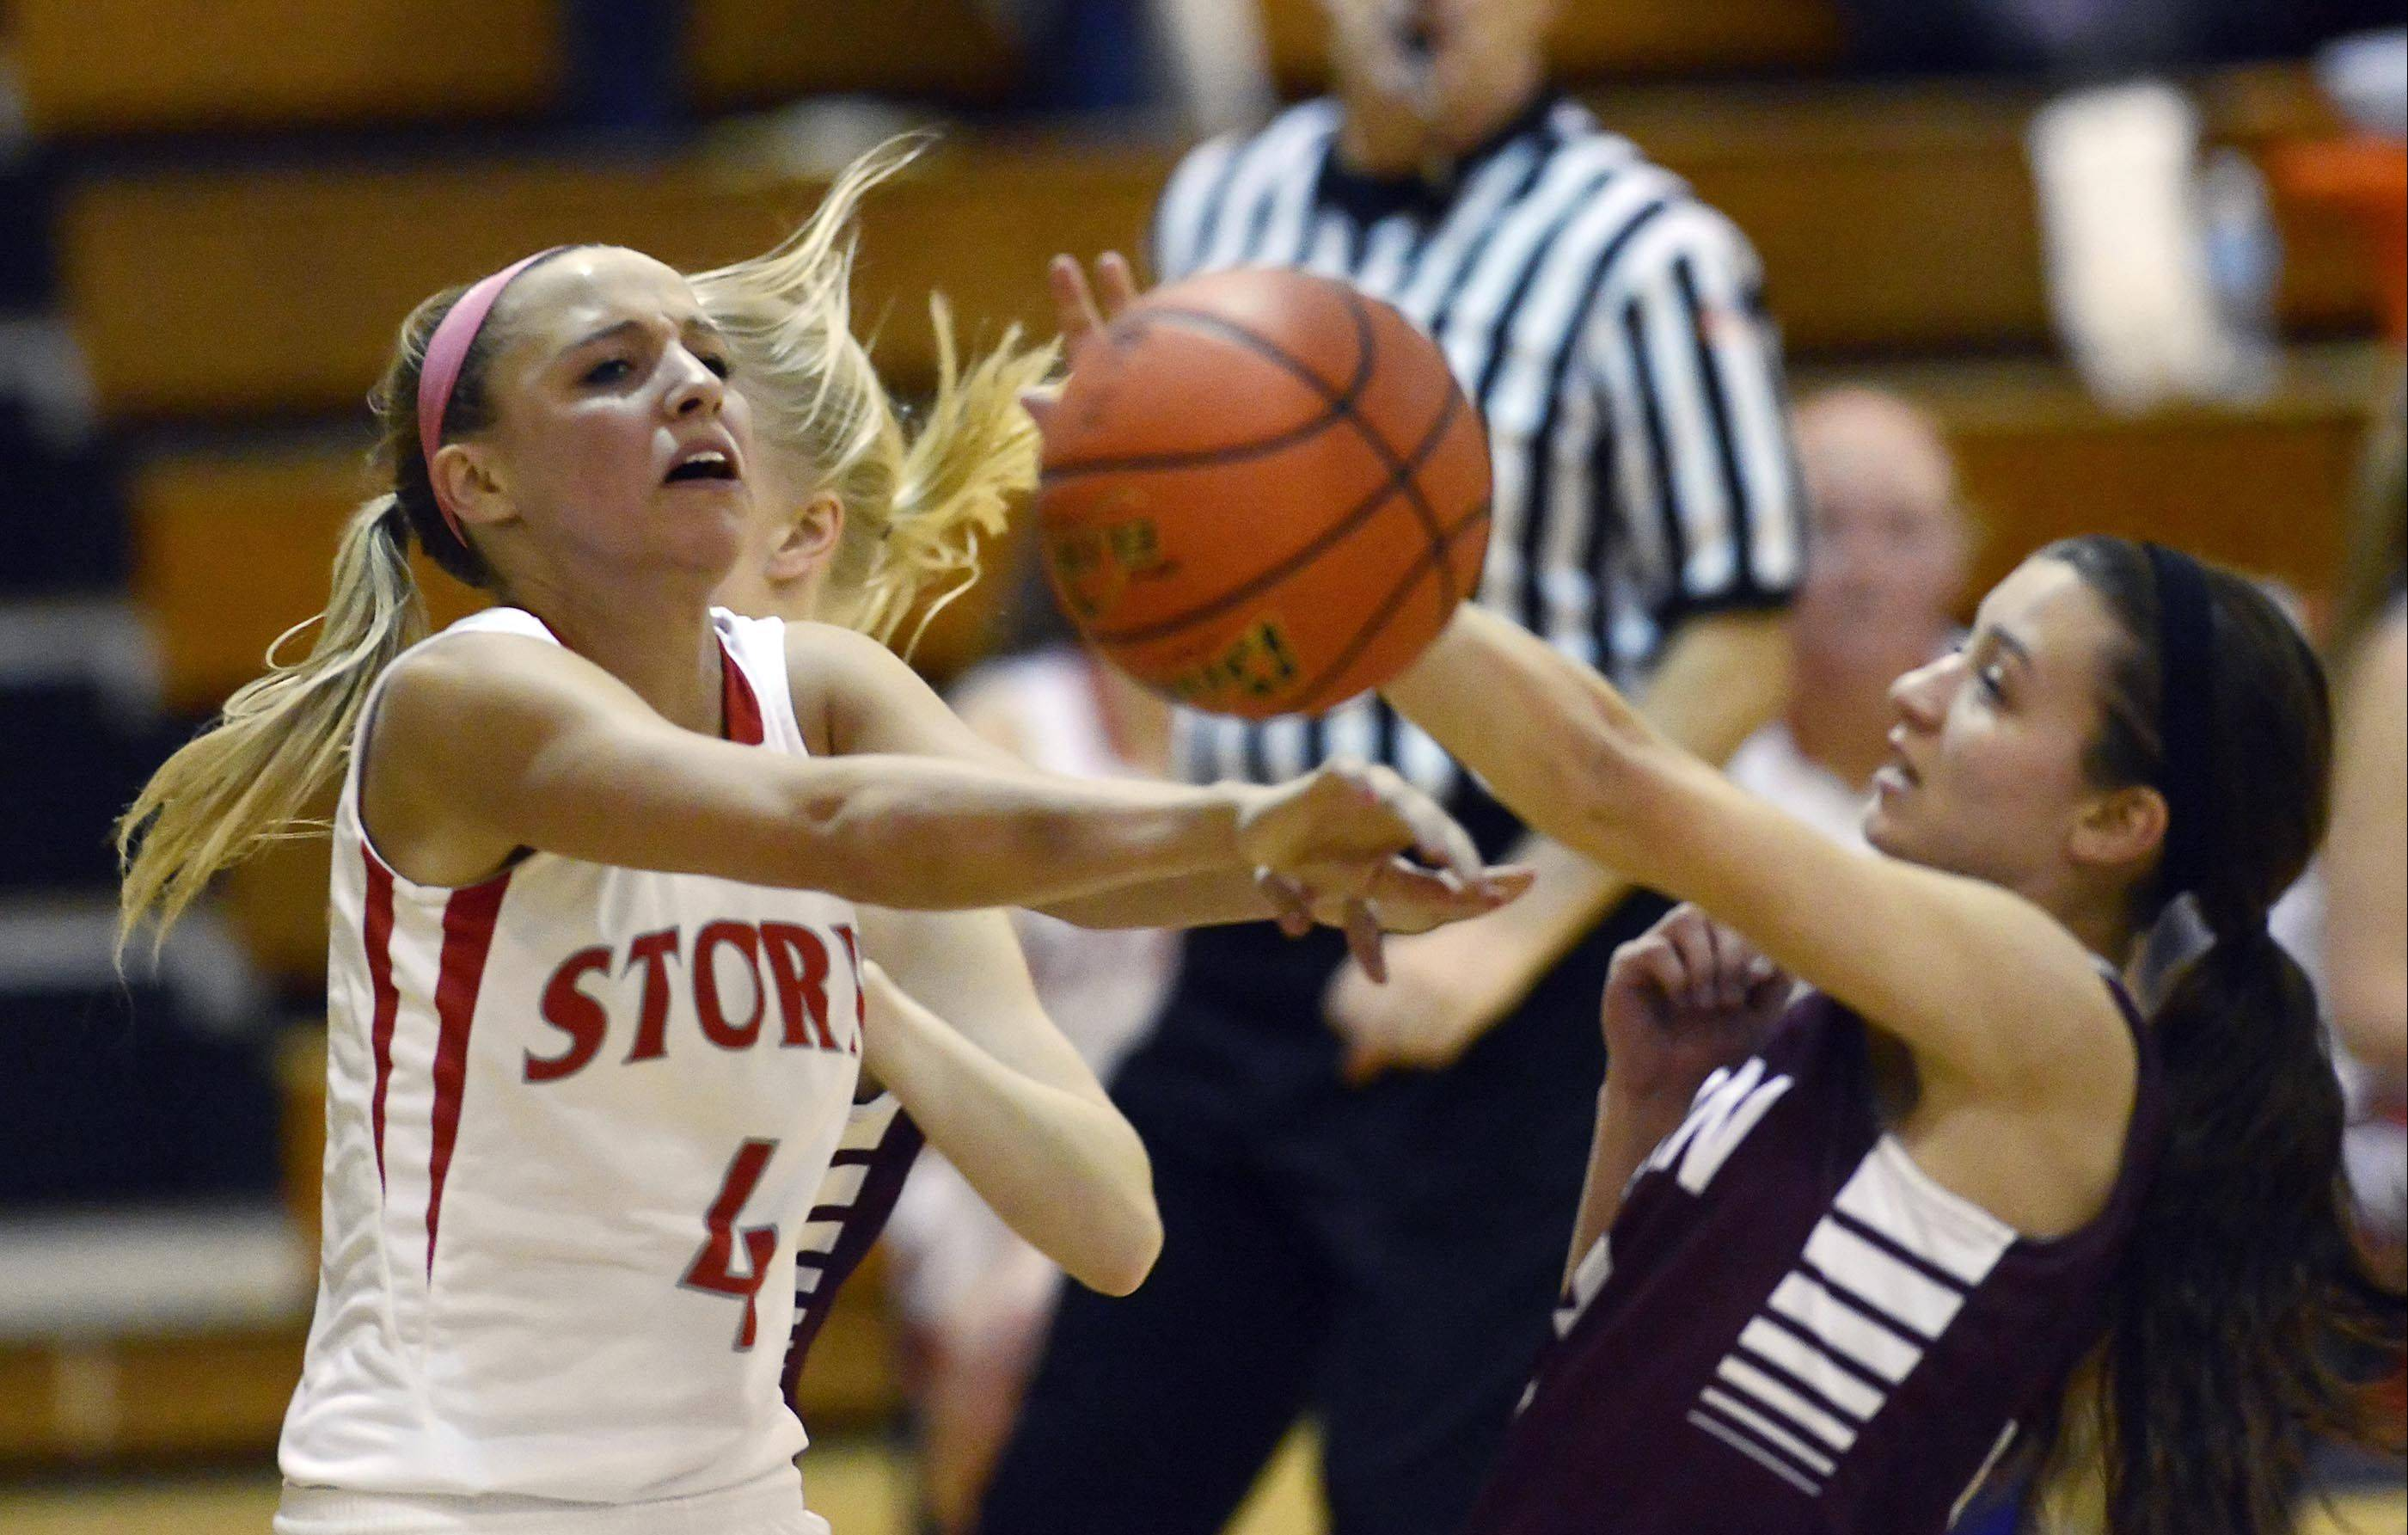 Elgin's Maggie Powers and South Elgin's Savanah Uveges collide as Uveges drives to the basket in Tuesday's Class 4A regional semifinal game in Streamwood.